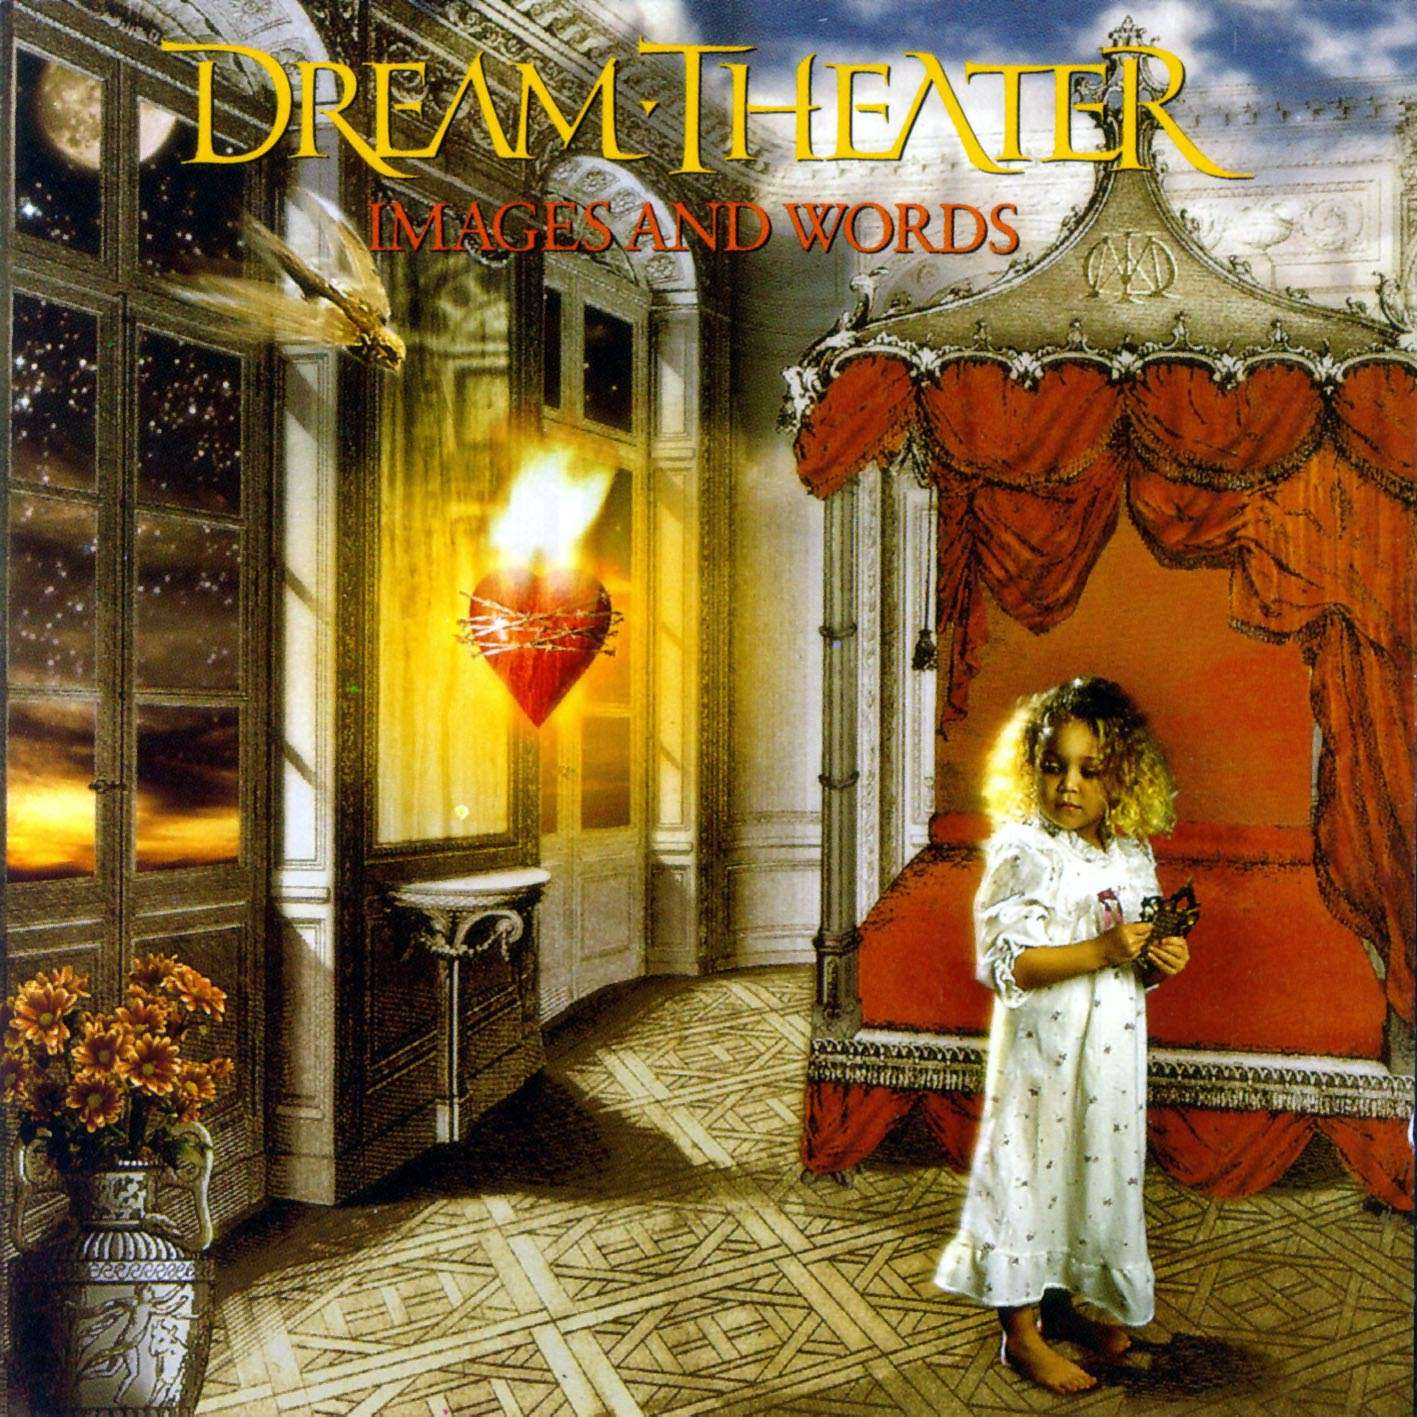 Dream Theater's Images and Words turns 25 years old